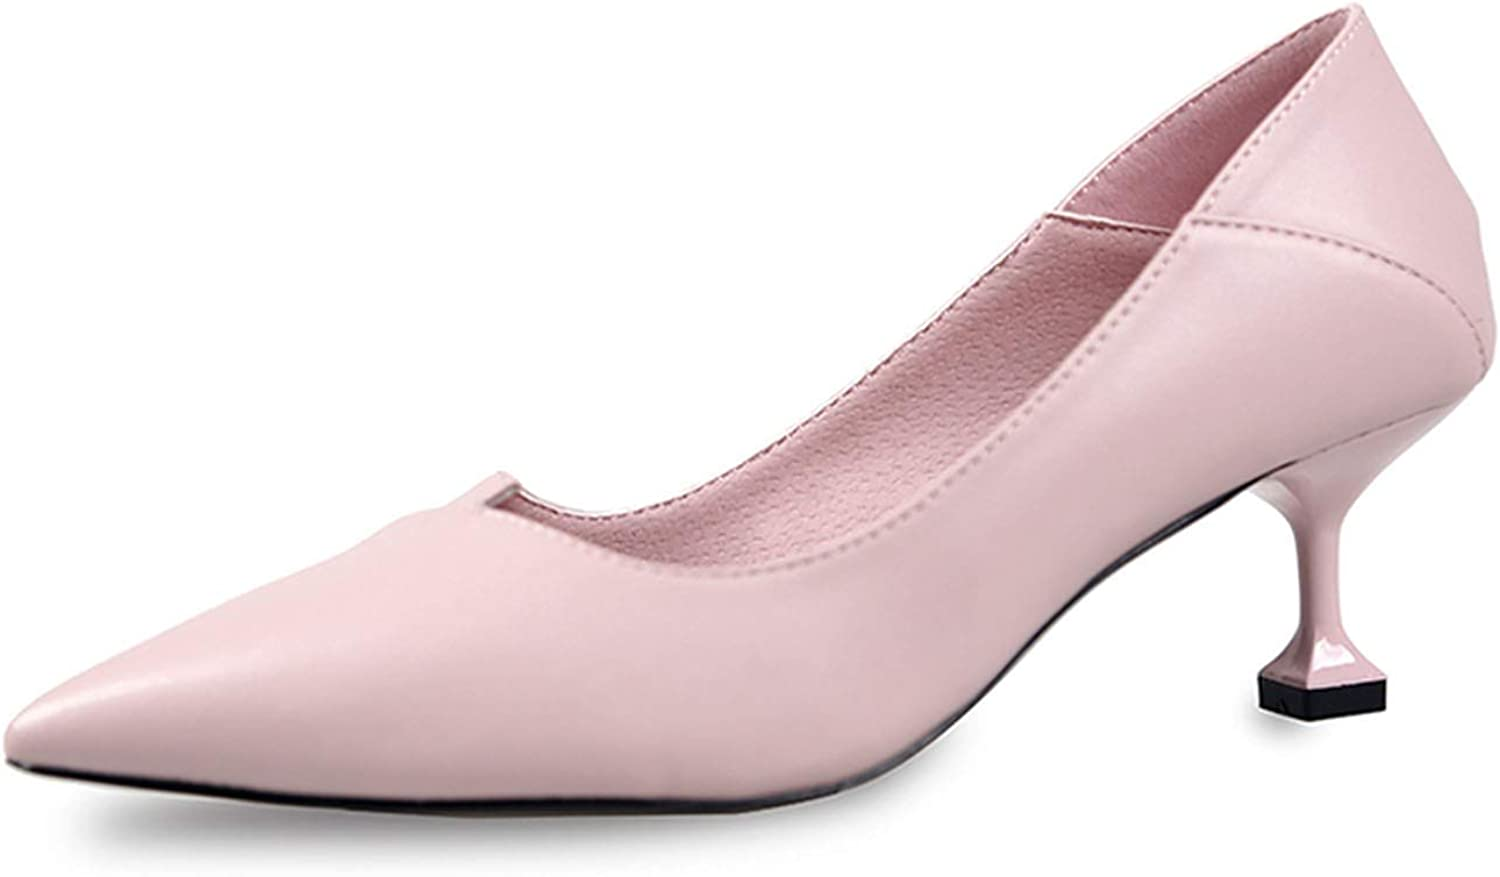 I'll NEVER BE HER Women Classic Pumps 6 cm High Heels Single Dress shoes Shallow Slip On Pointed Toe Lightweight